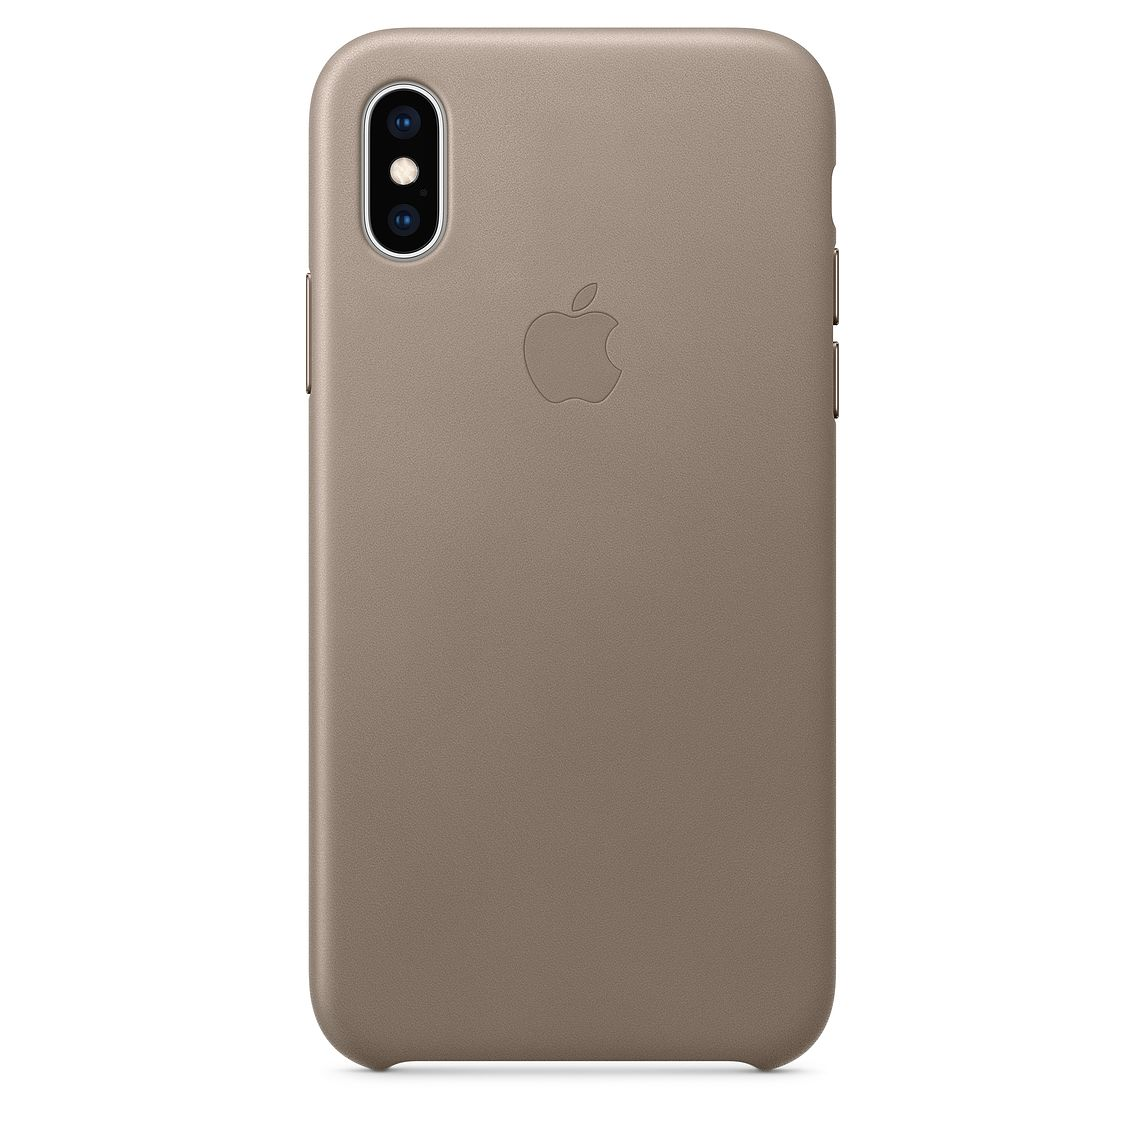 iPhone XS Leather Case Taupe MRWL2FE/A